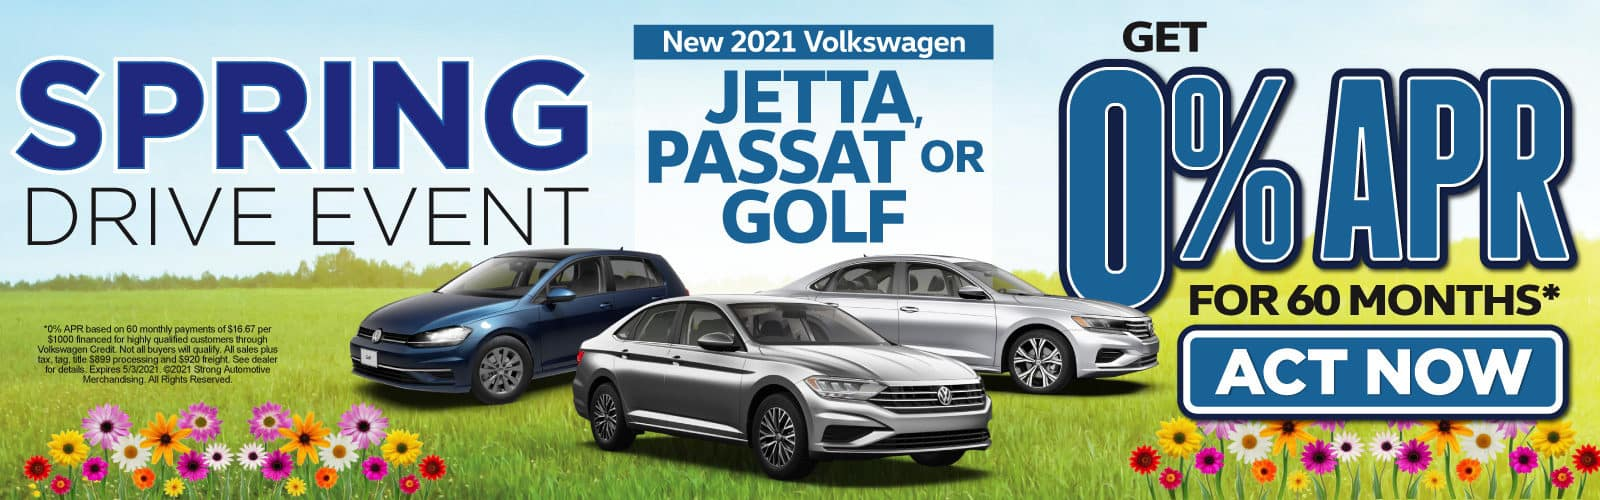 New 2021 VW Jetta, Passat or Golf - 0% APR for up to 60 months - Act Now